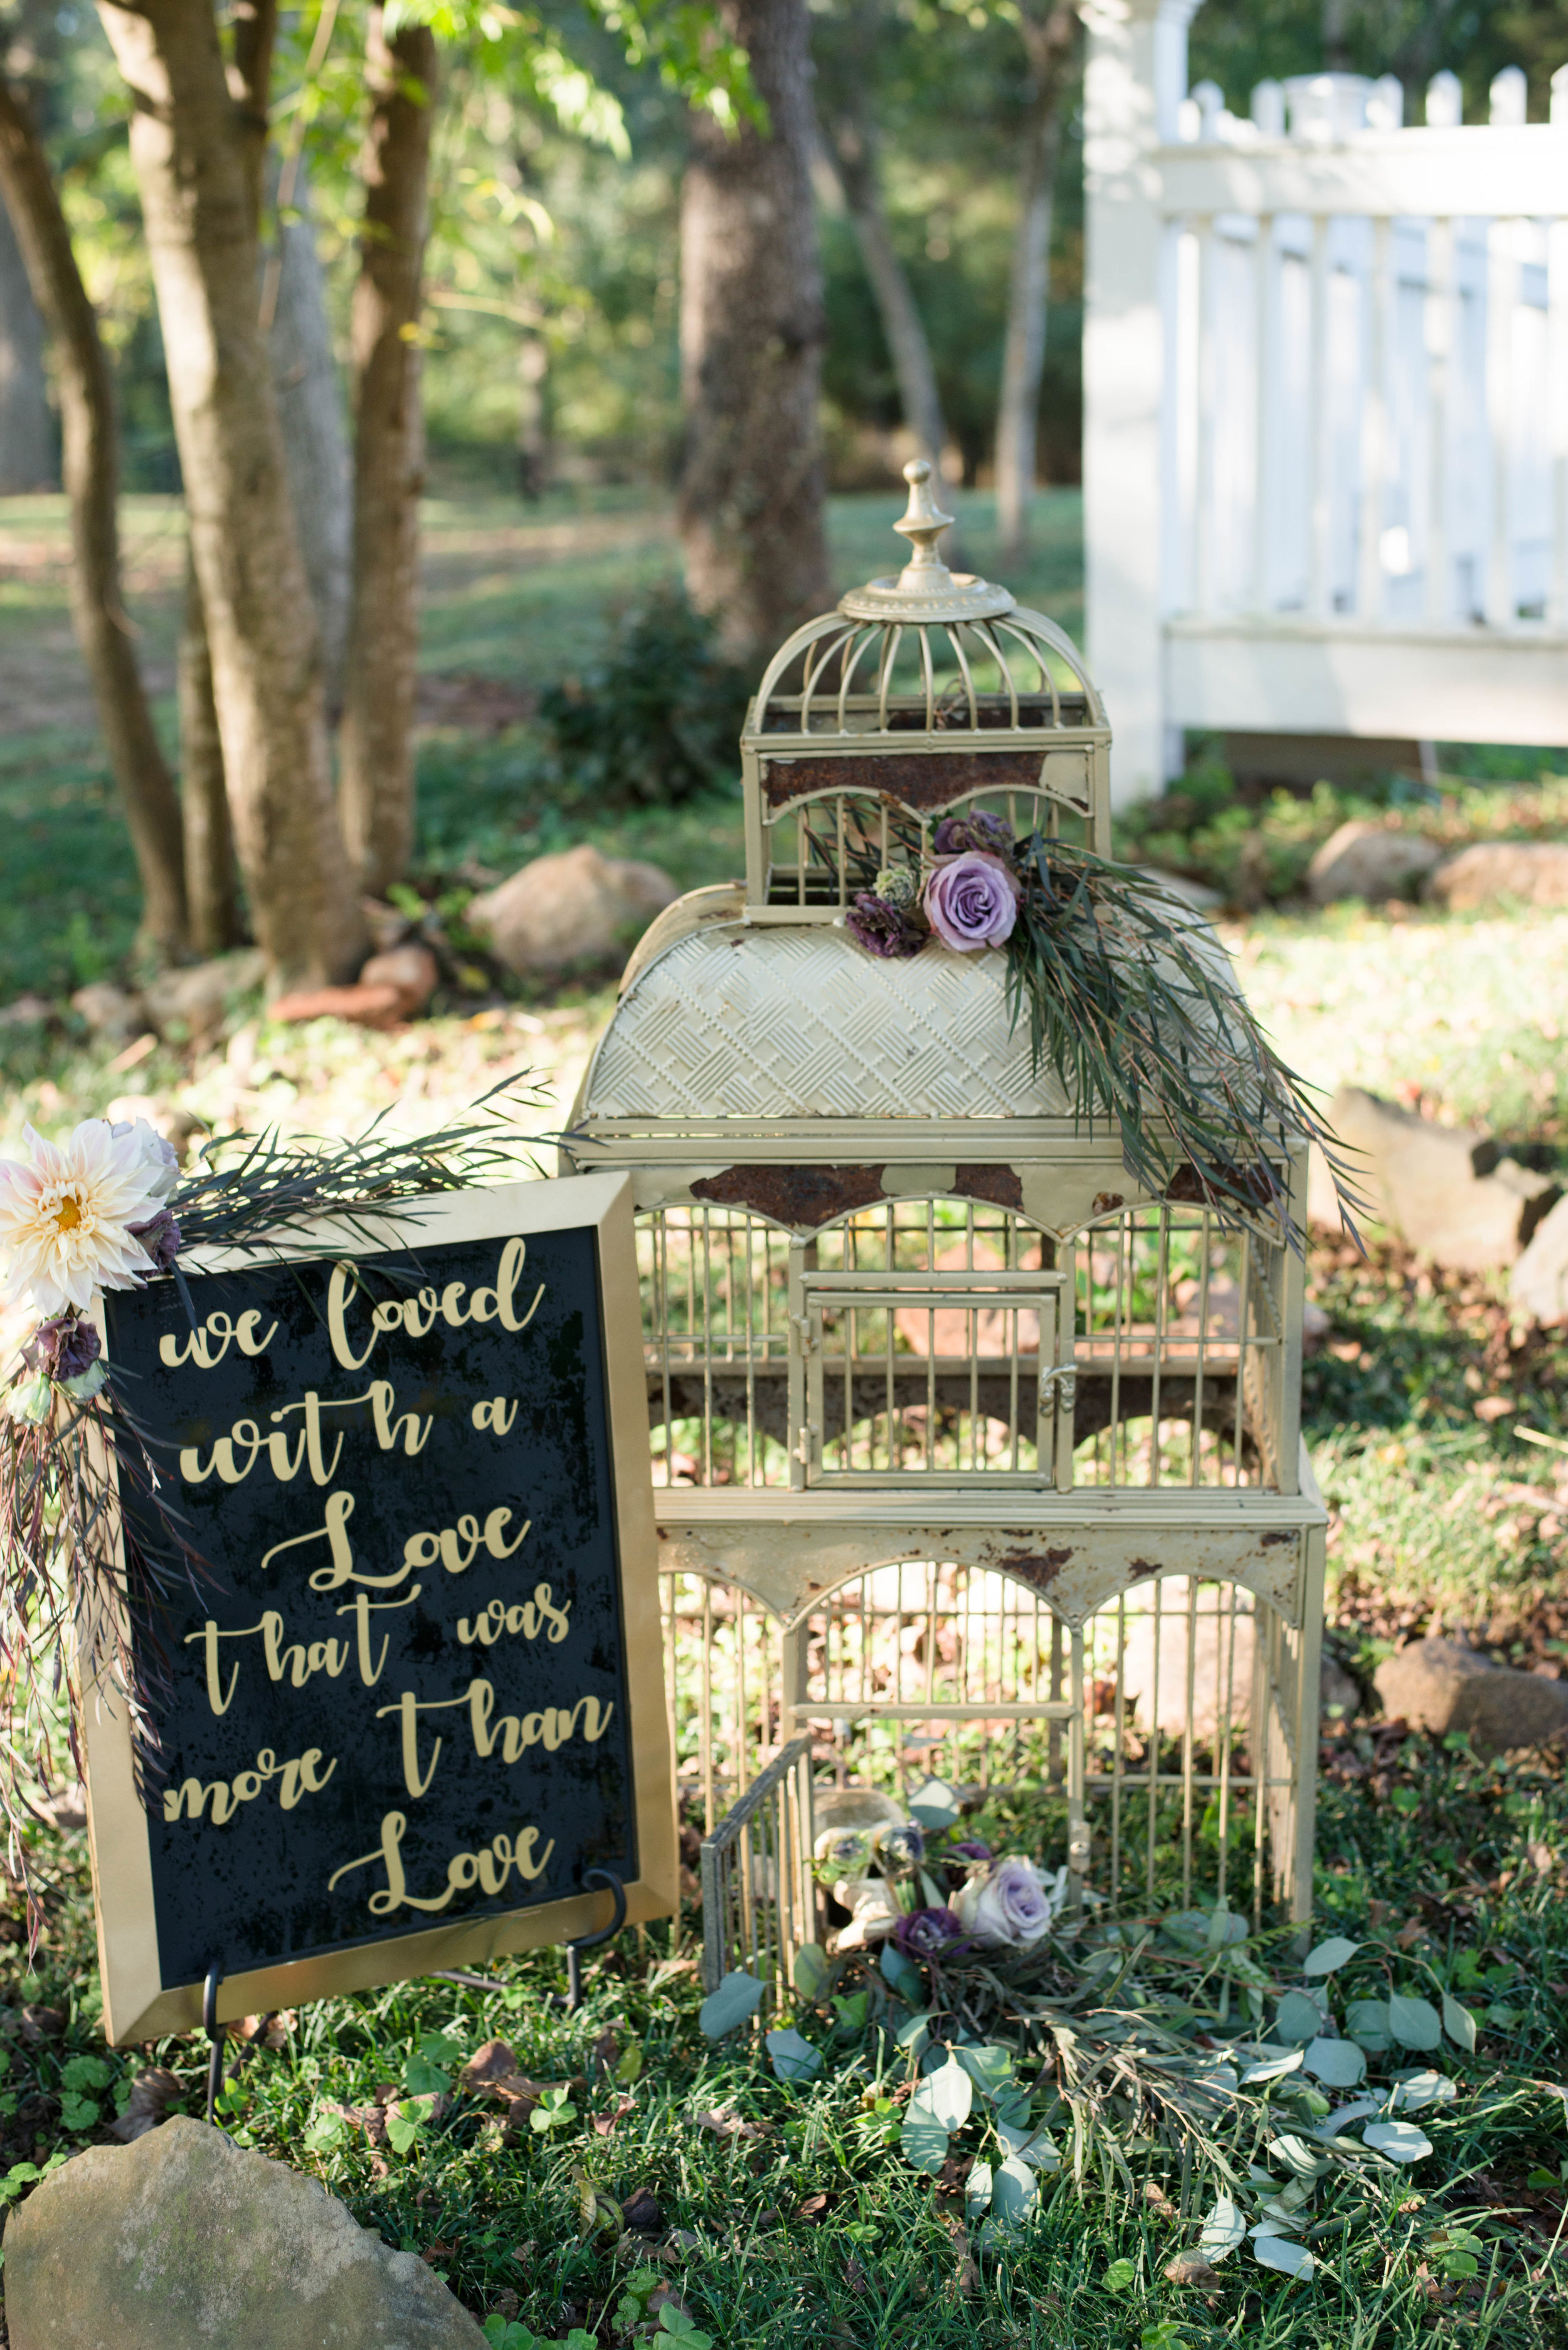 Custom Lettering and Bird Cage for wedding